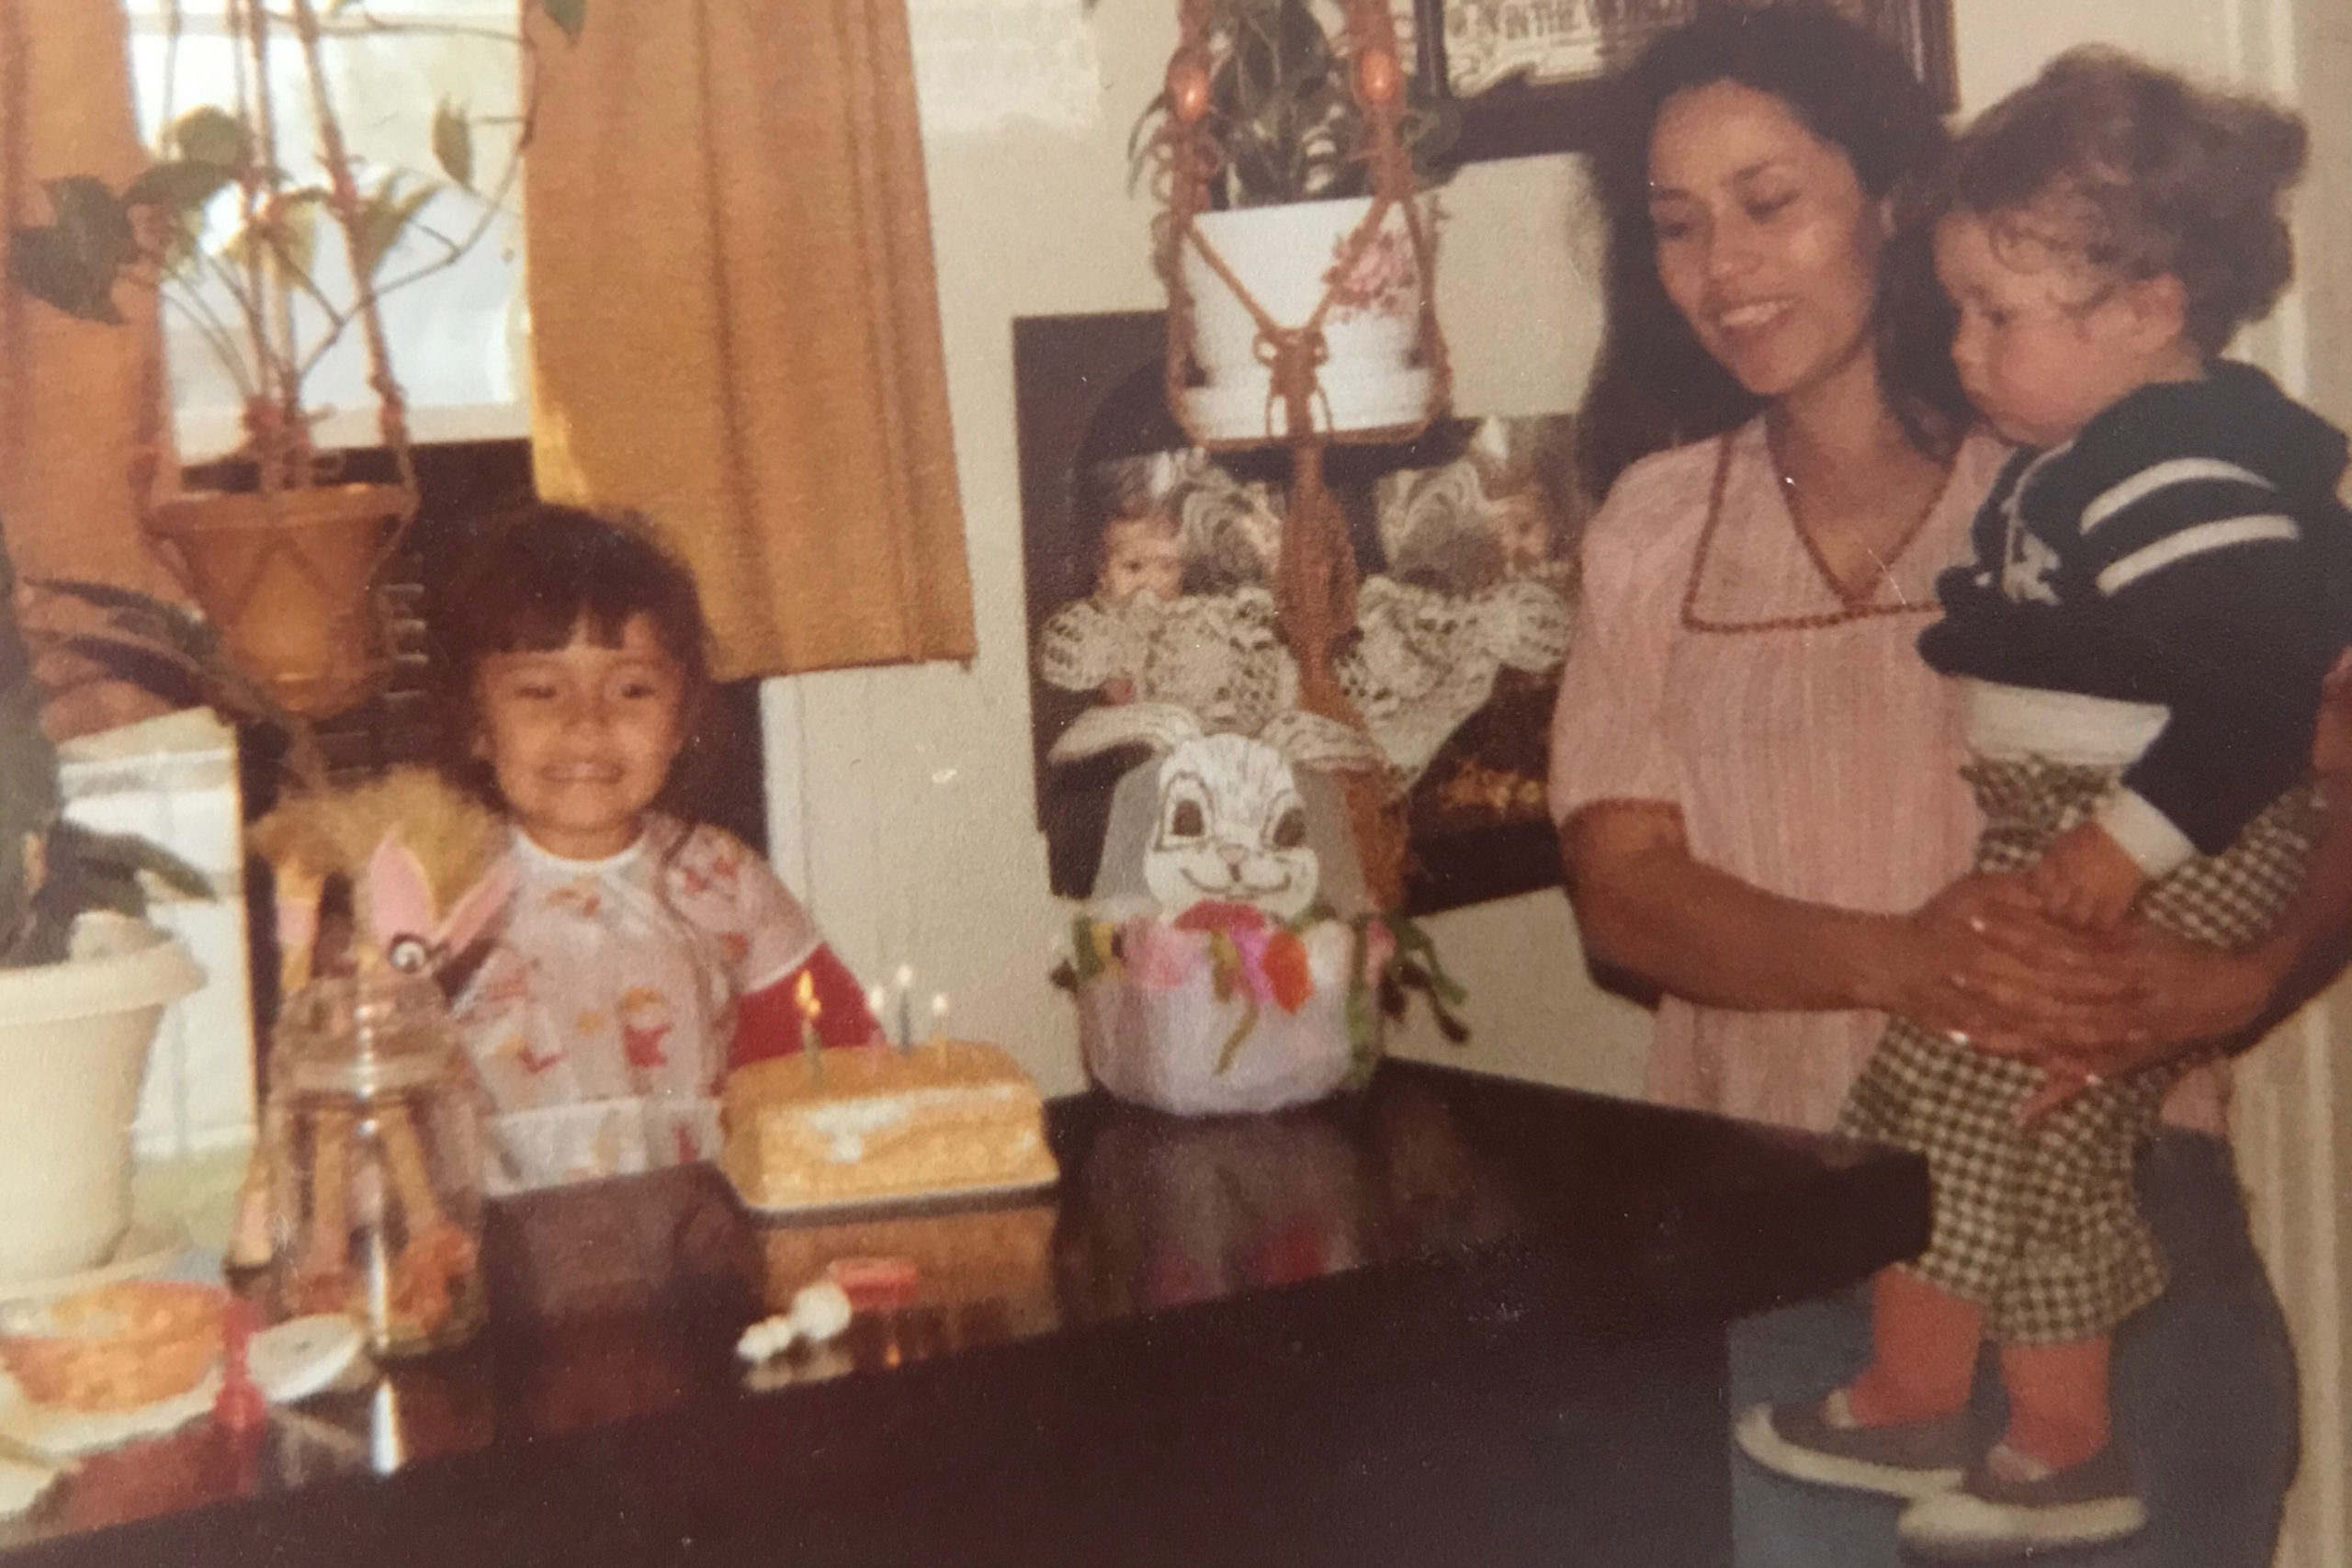 Abel Chávez as a baby in his childhood Elyria-Swansea house celebrating his sister Edith's birthday.